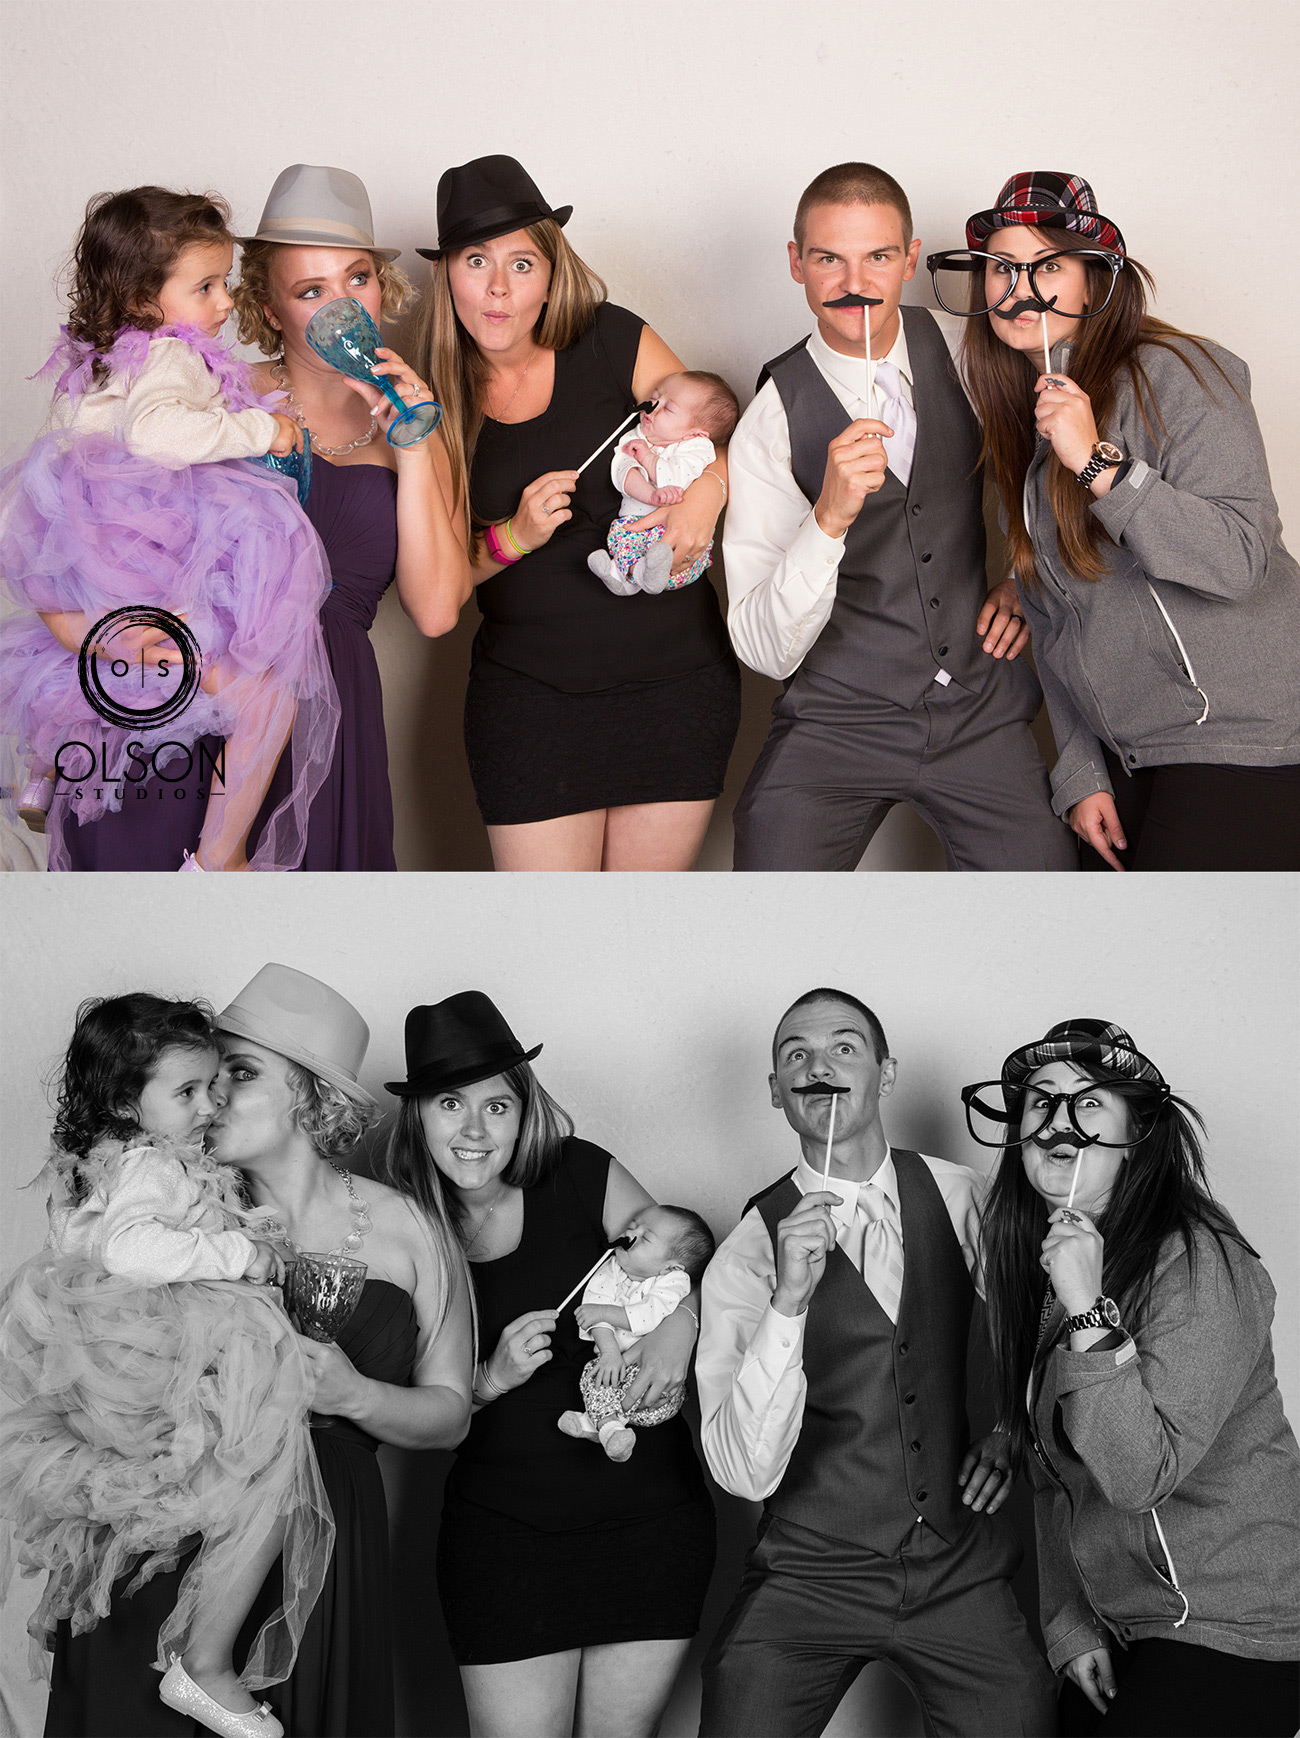 Matthew-and-Victoria-Photo-Booth-(29)